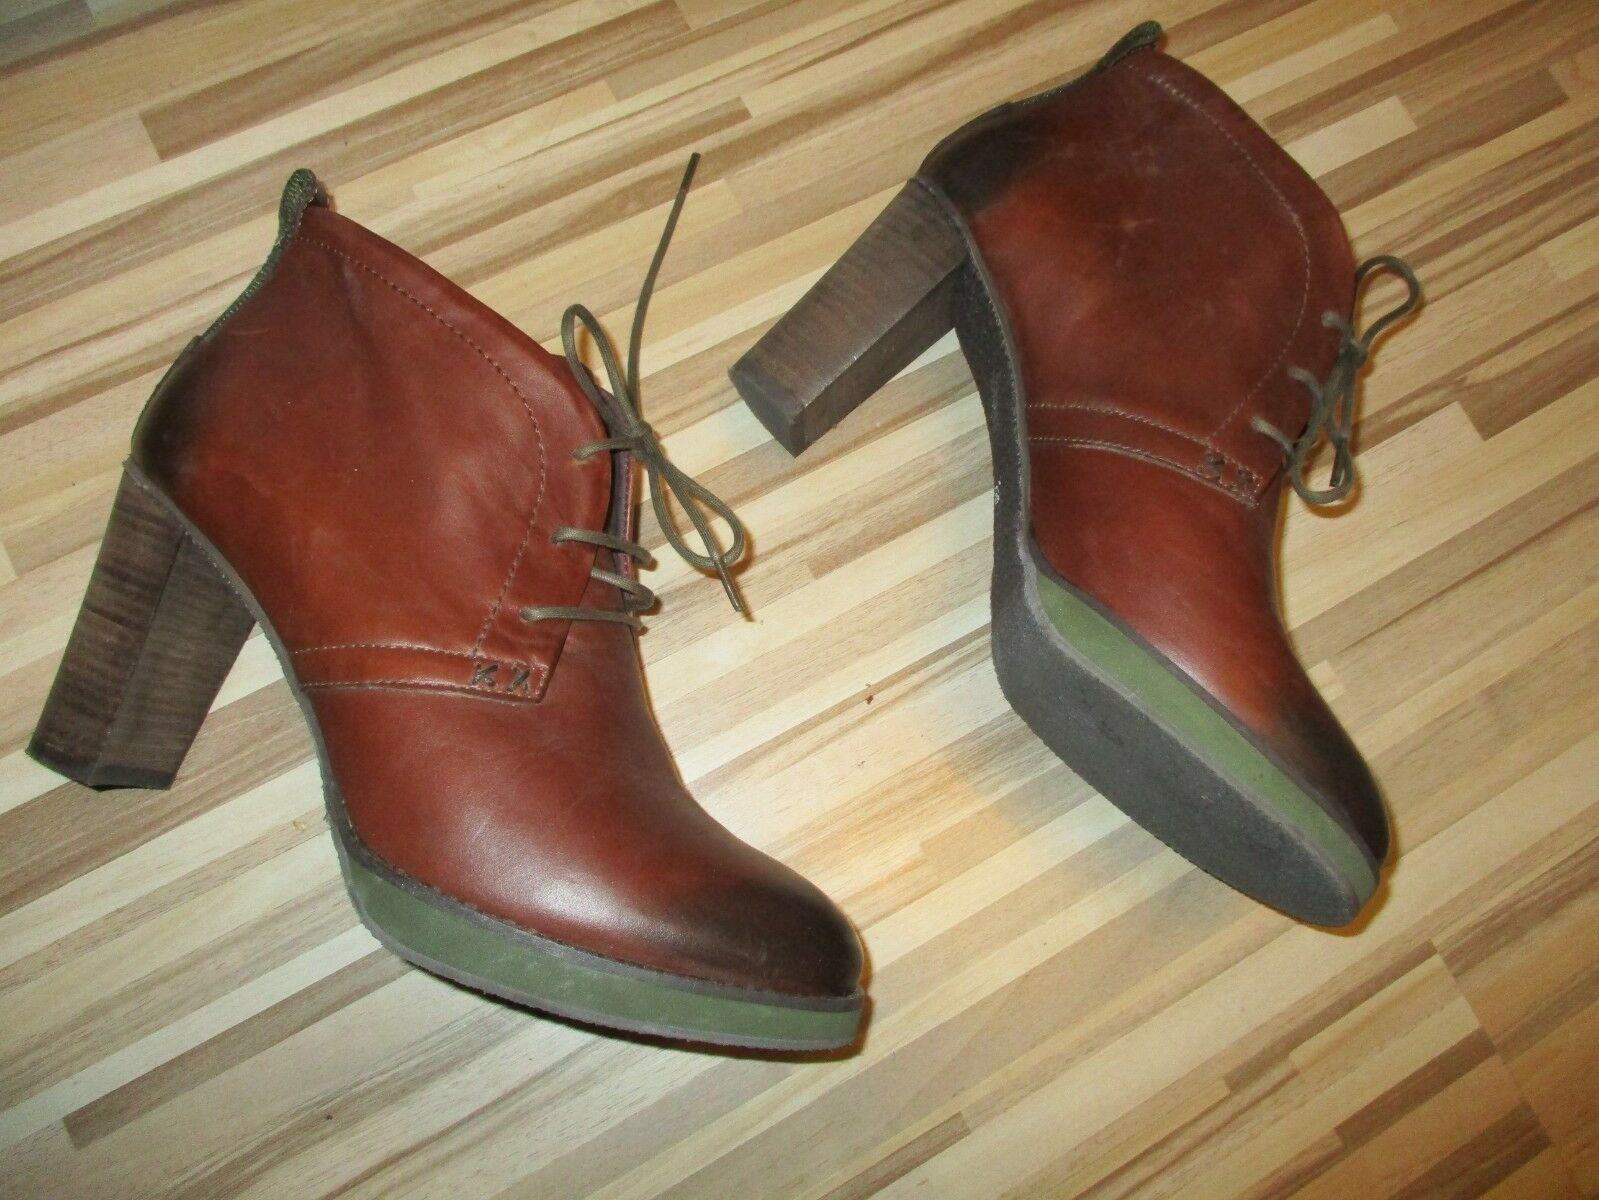 MEXX bottines bottes bottine chaussures lacets Taille 39 cuir marron